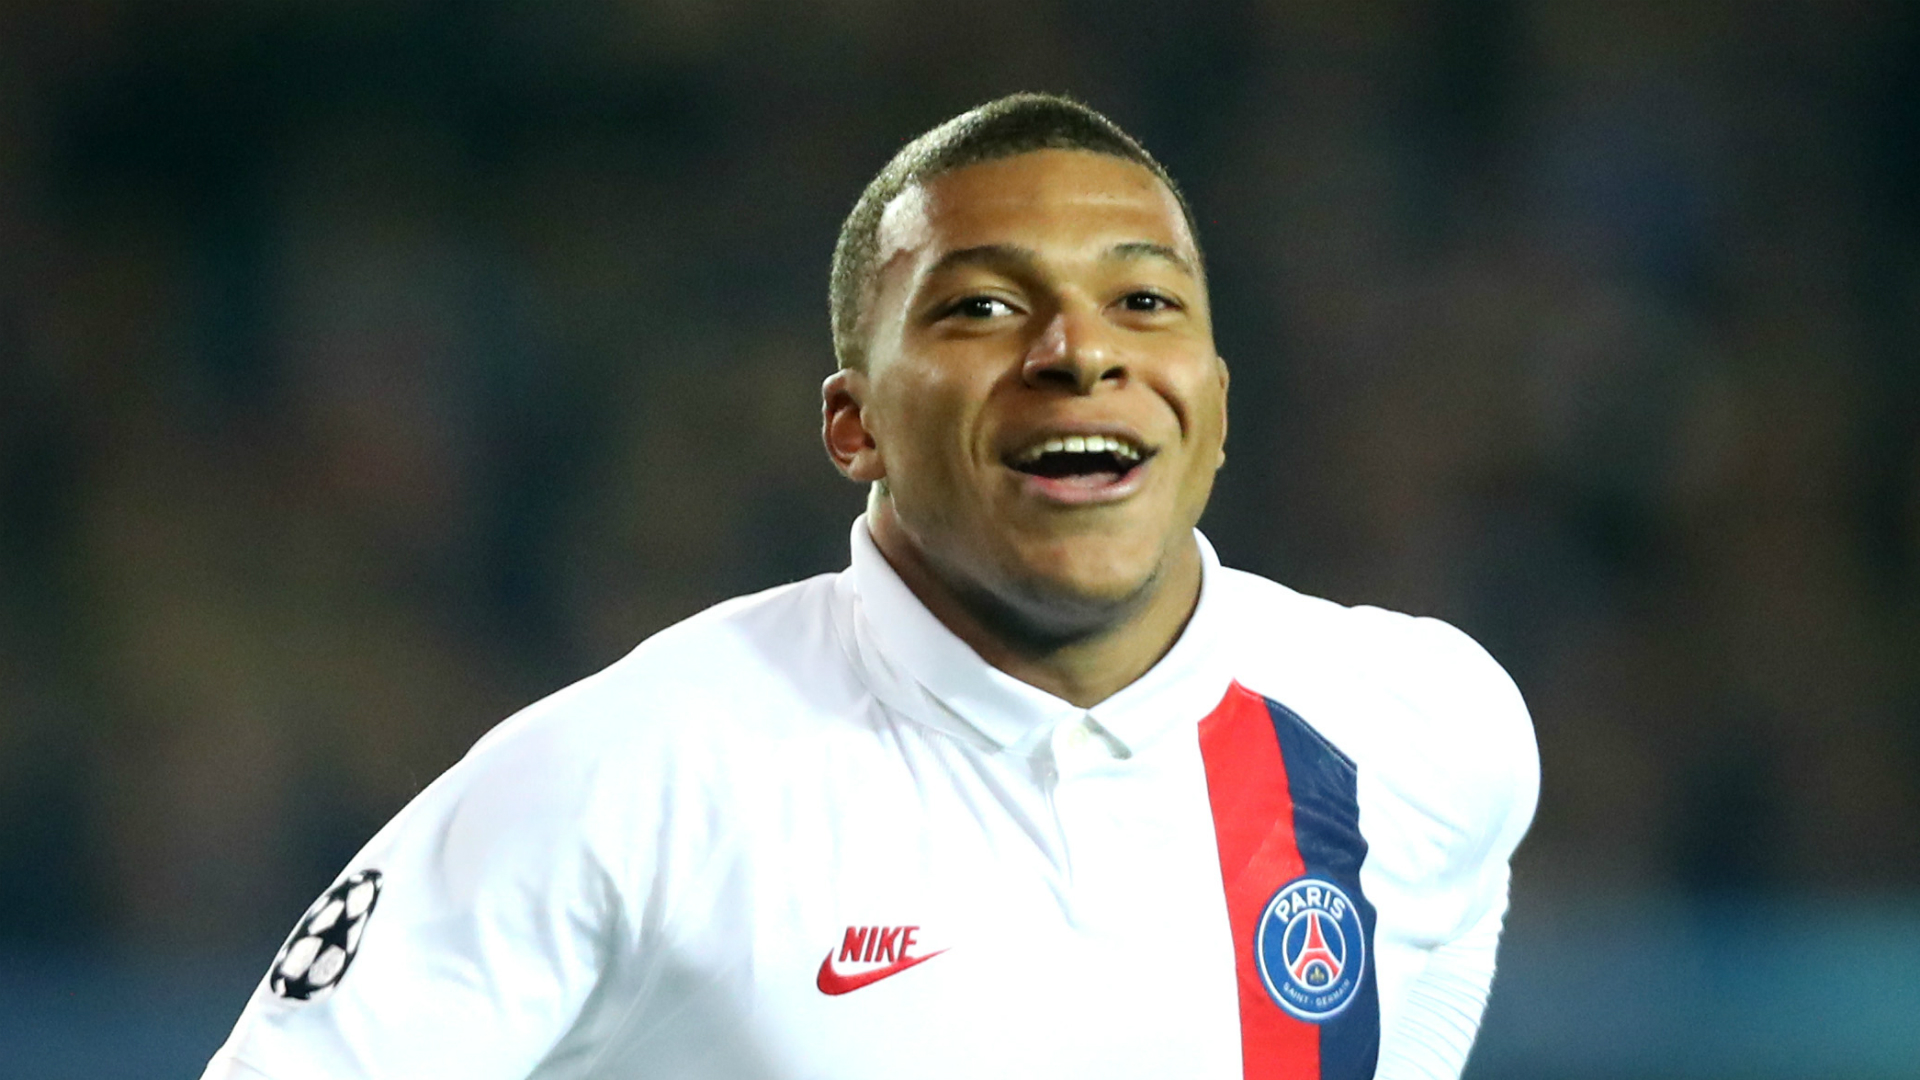 Everybody loves Mbappe! Pauleta likens PSG superstar to Messi and Ronaldo